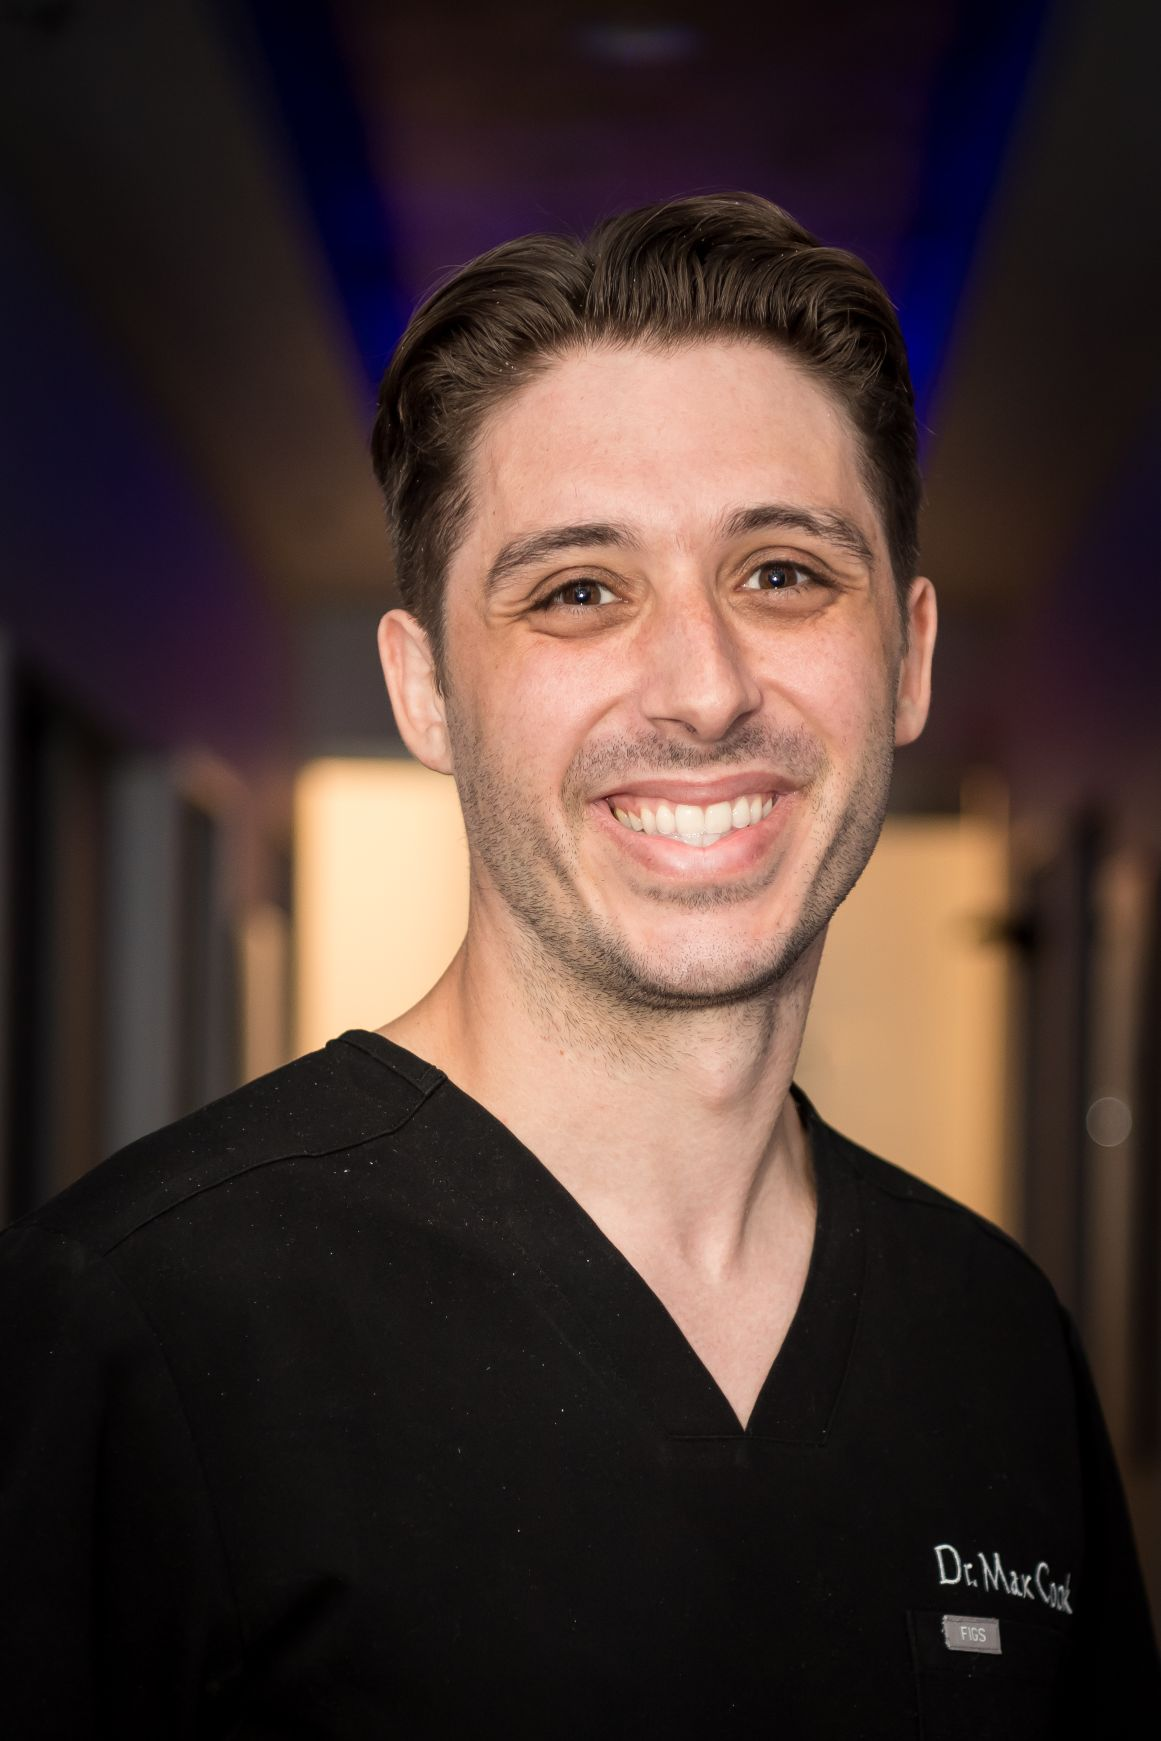 Dr. Max Cook - LIV Dentistry - Dentist for The Colony and Frisco, TX. Dentist office Frisco, The Colony, Texas